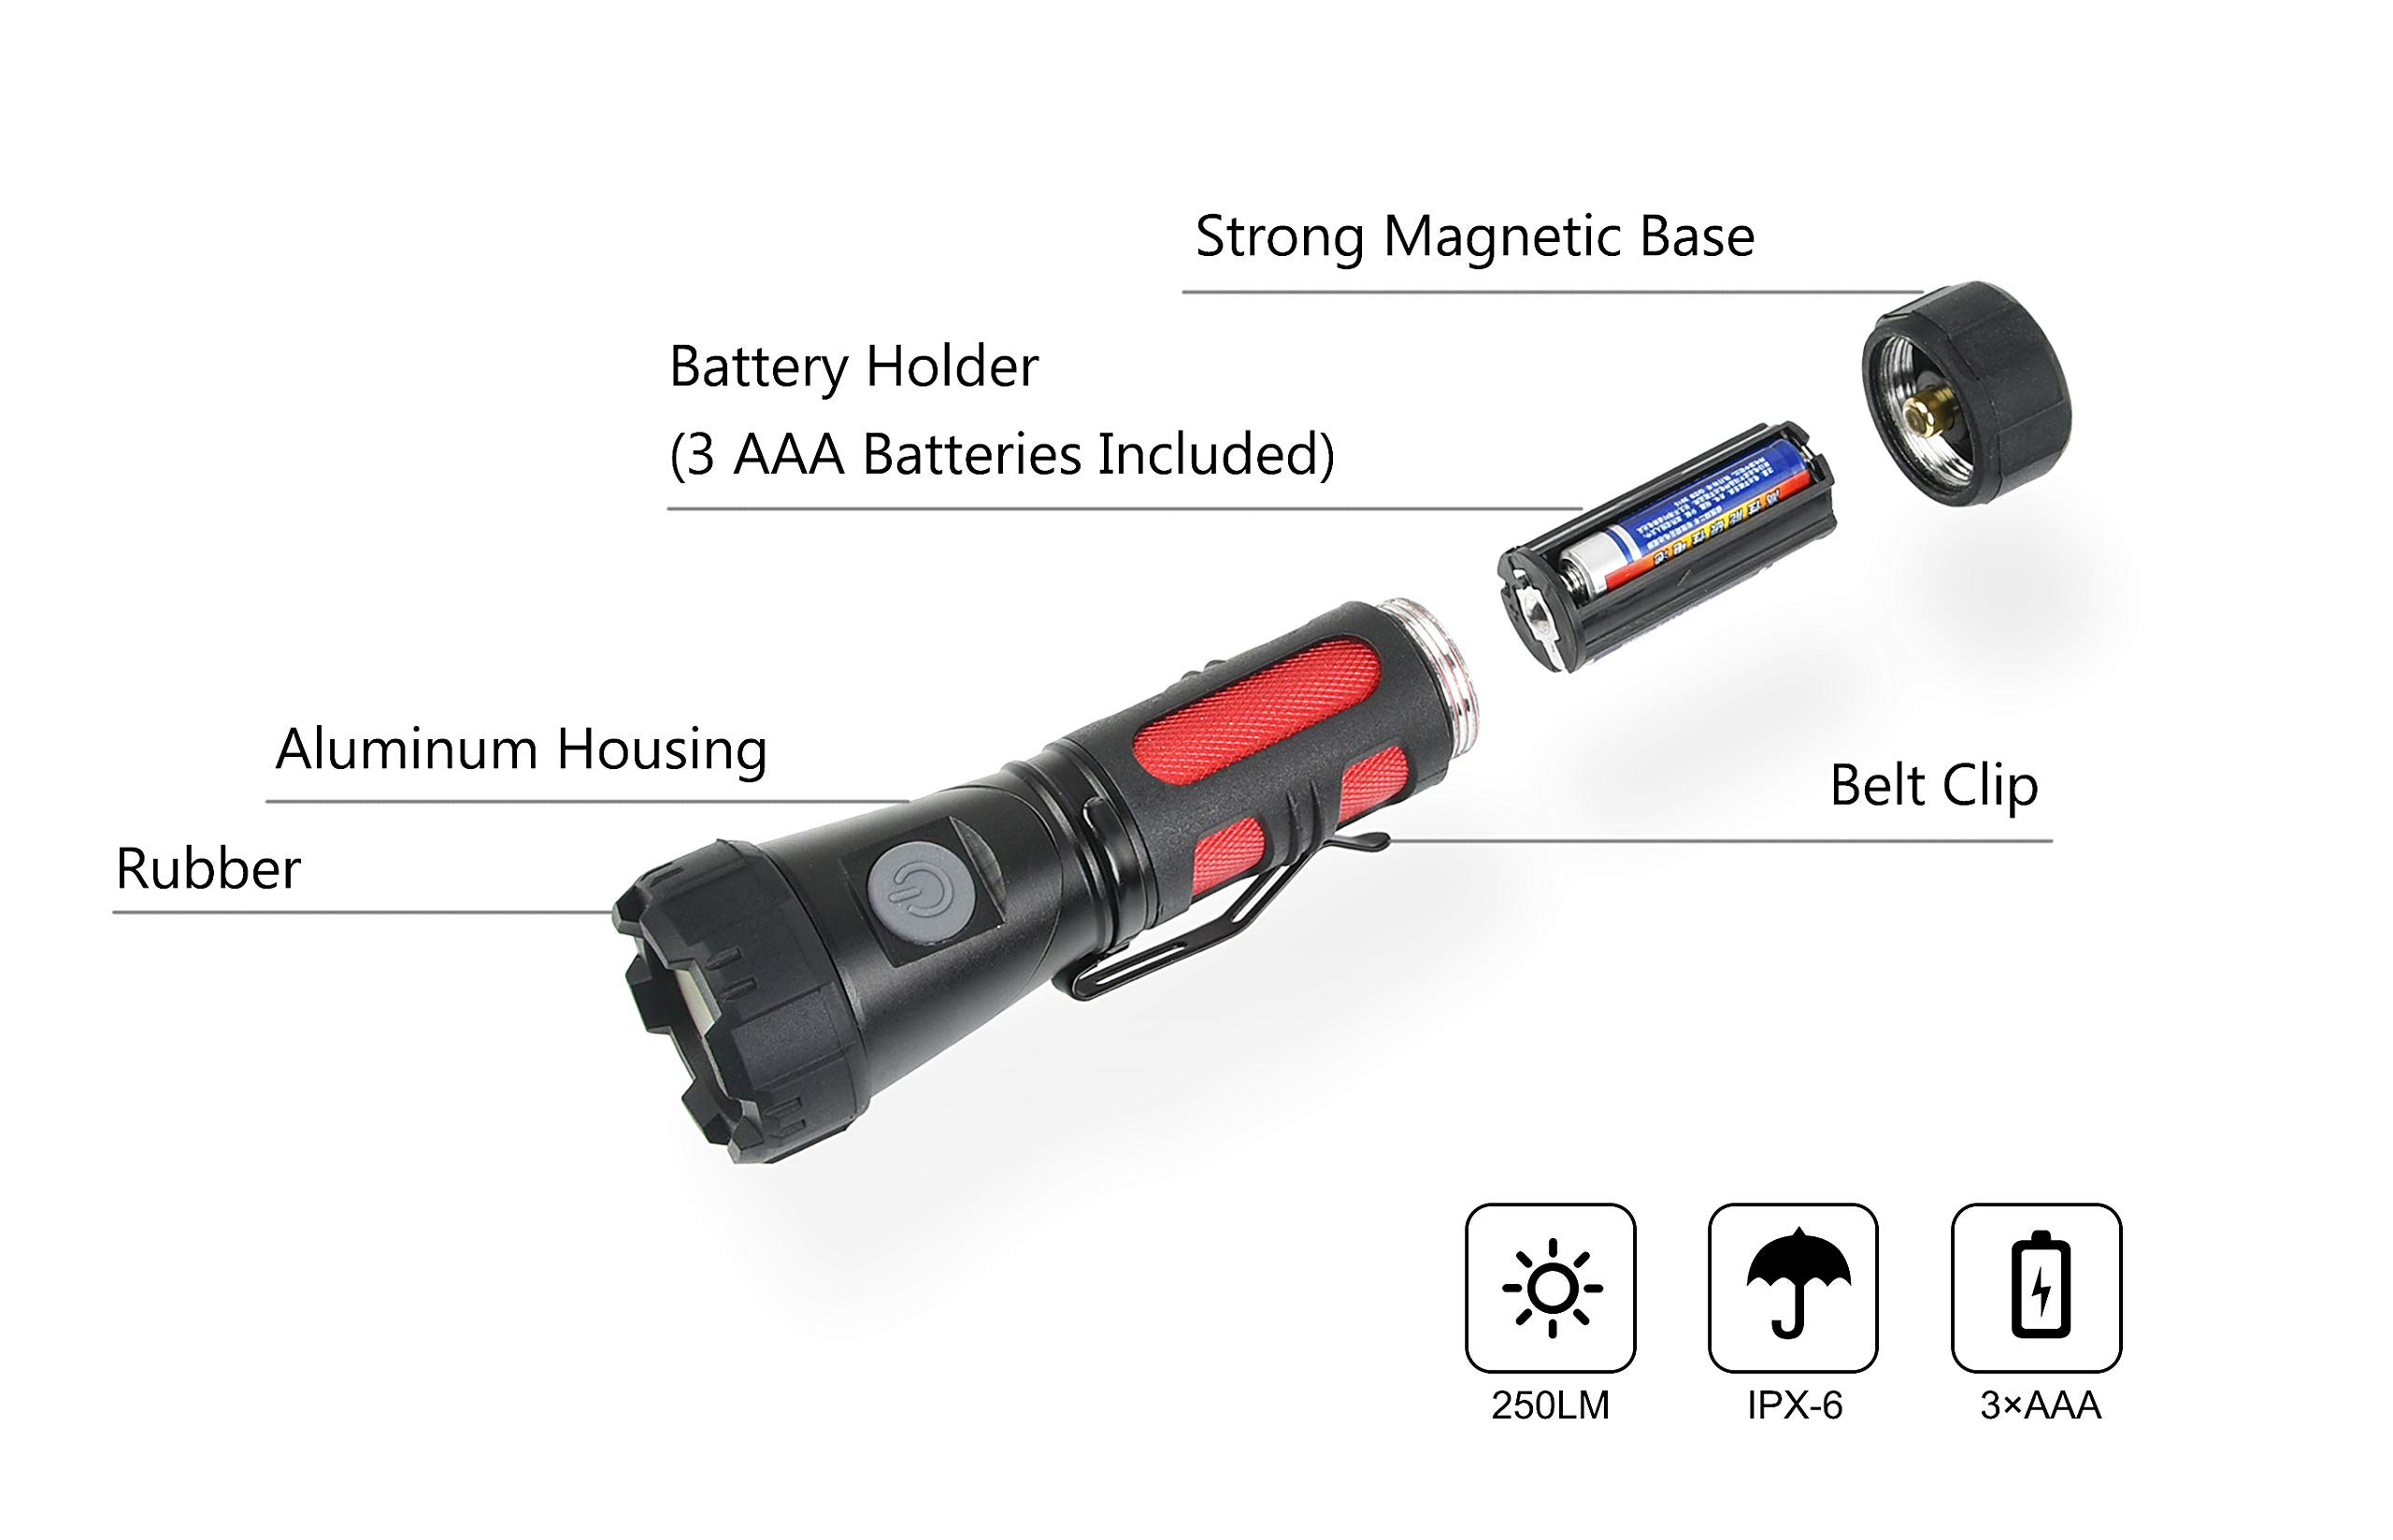 FLOWood LED Flashlight Torch Tactical Torch,Magnetic Adjustable-Head Portable LED Flashlight with Batteries,1000LM Handheld Flashlight for Camping Hiking Indoor Outdoors [Energy Class A+]